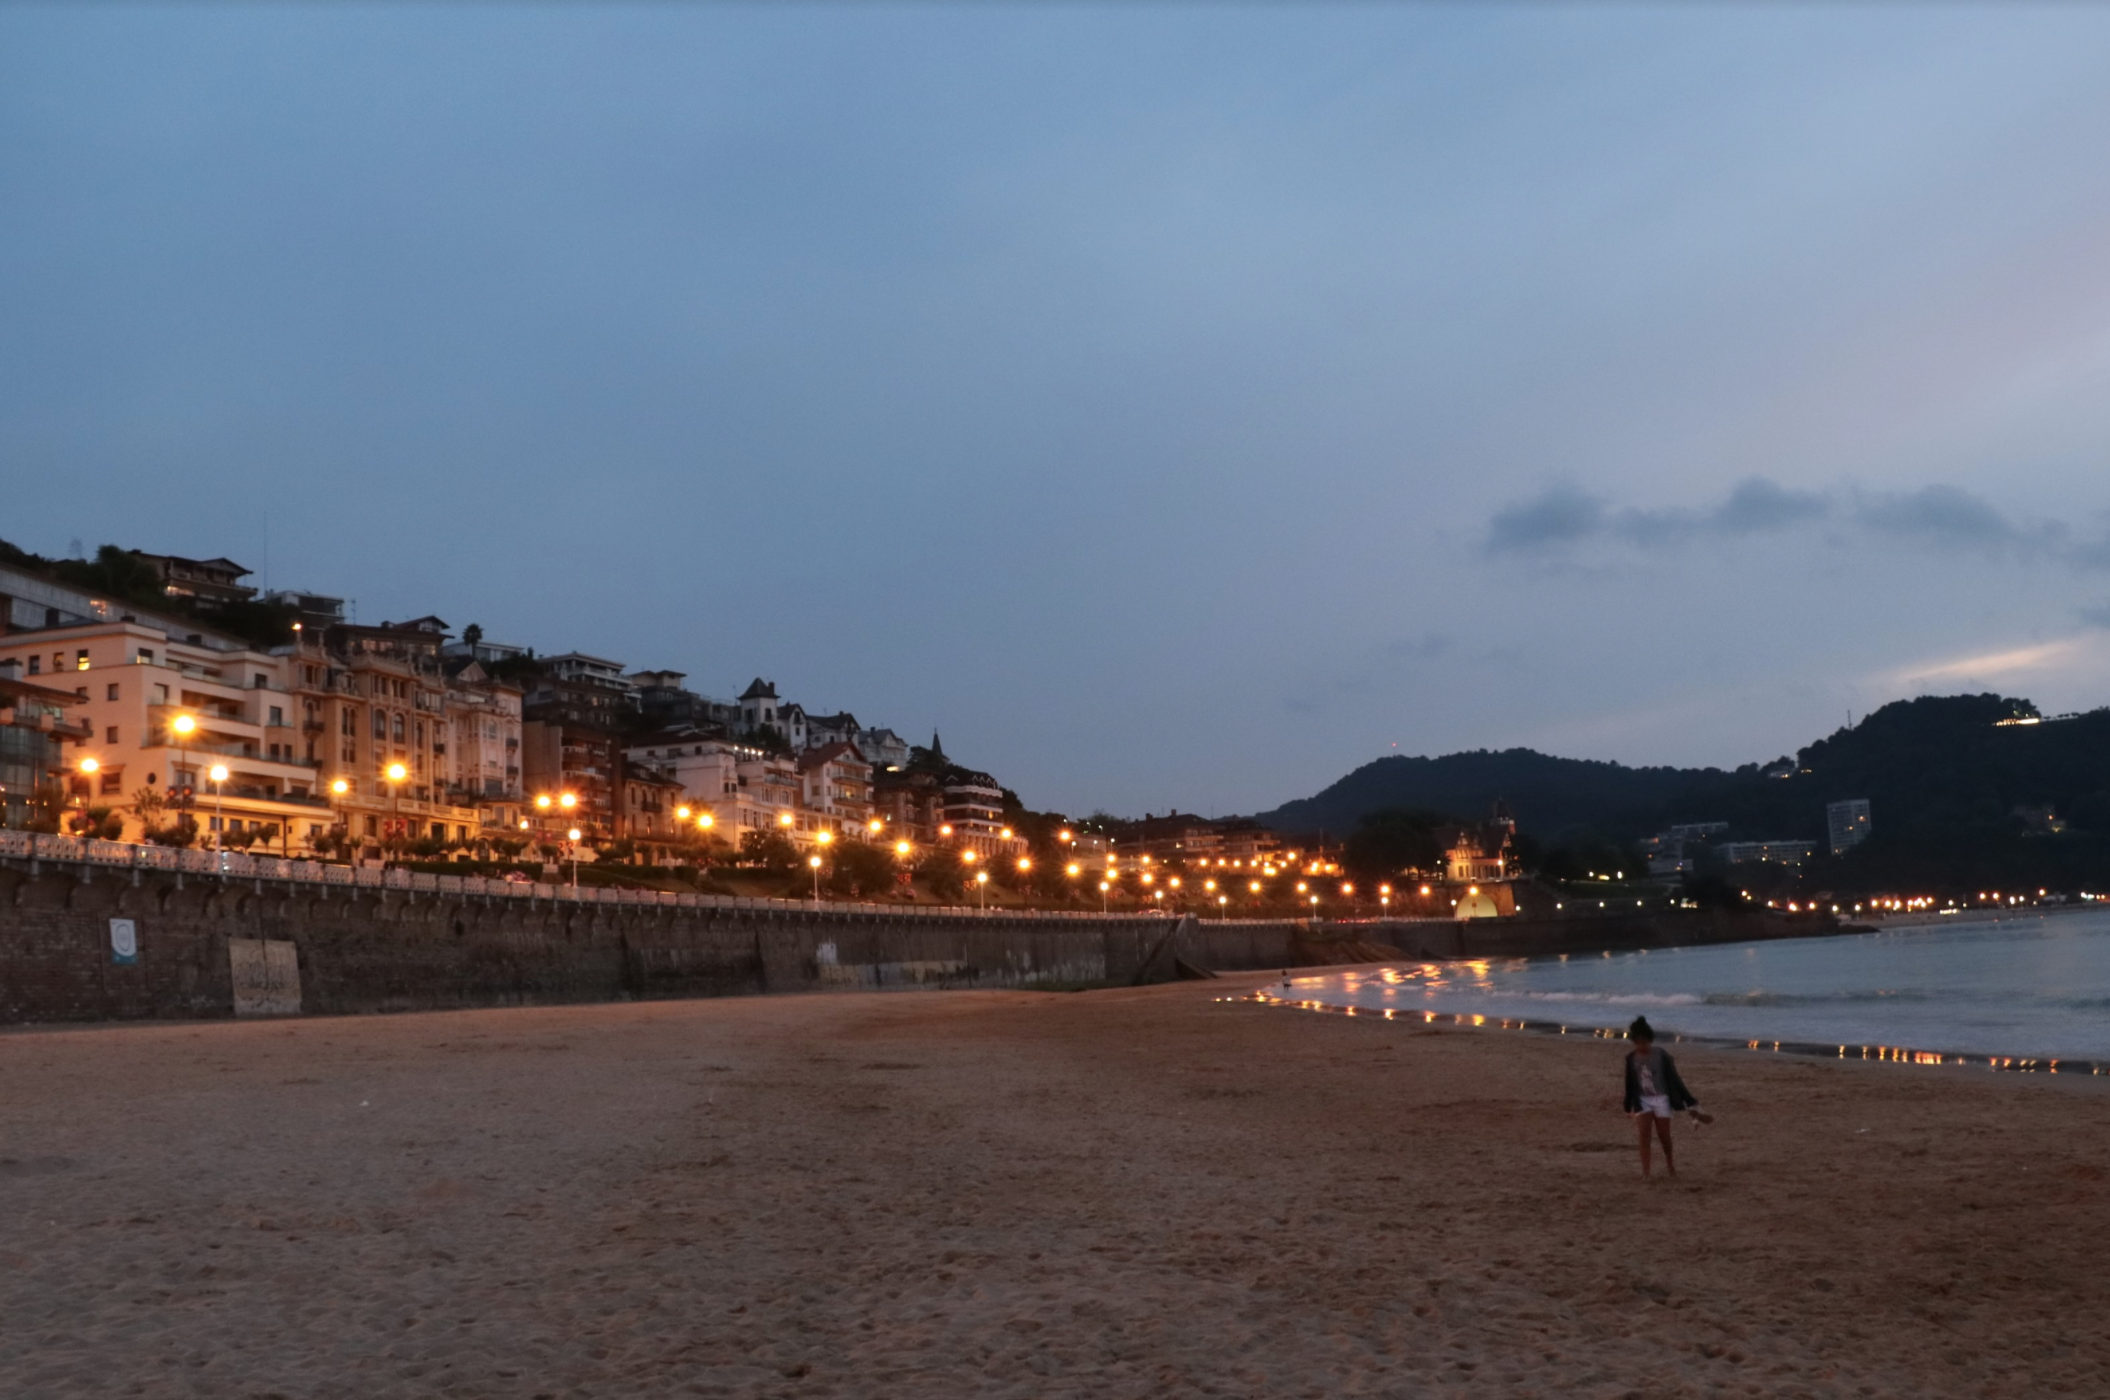 Historically, San Sebastian was a peaceful, quiet town prior to Napoleon's occupation, when civil unrest became the norm and bridges like The Santa Catalina, originally a wooden bridge, was repeatedly destroyed and rebuilt resulting in what you see today: far more elaborate, regal structure protruding from the cliff sides along the sea.